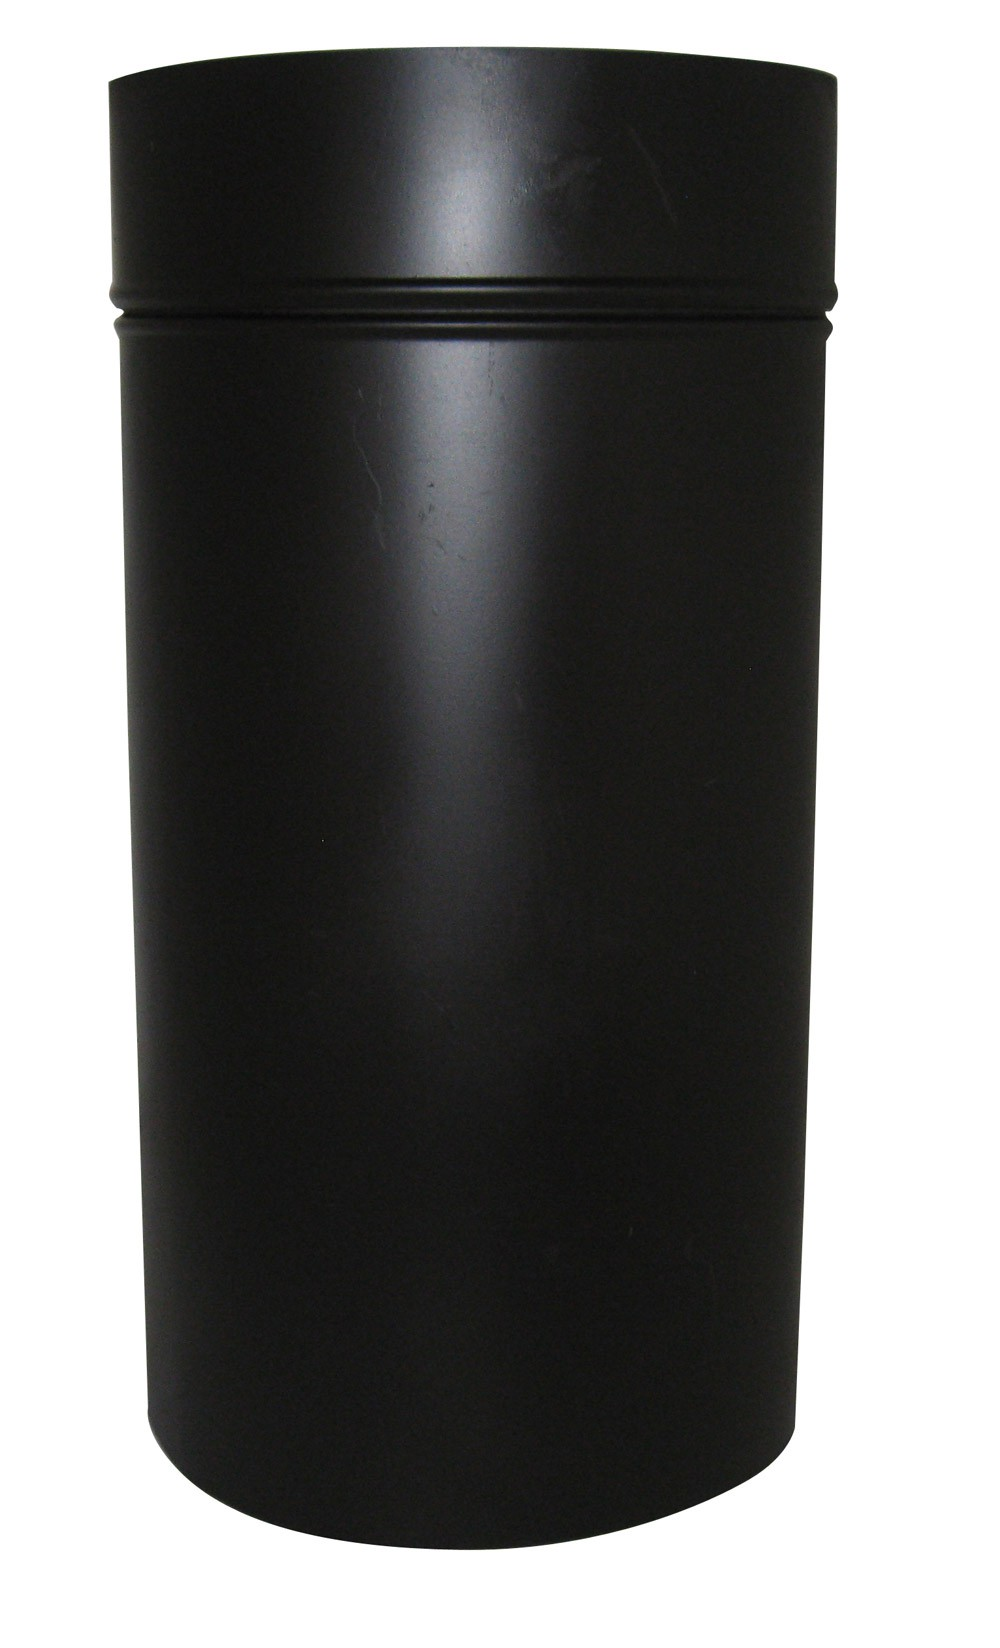 Black Chimney Adapter